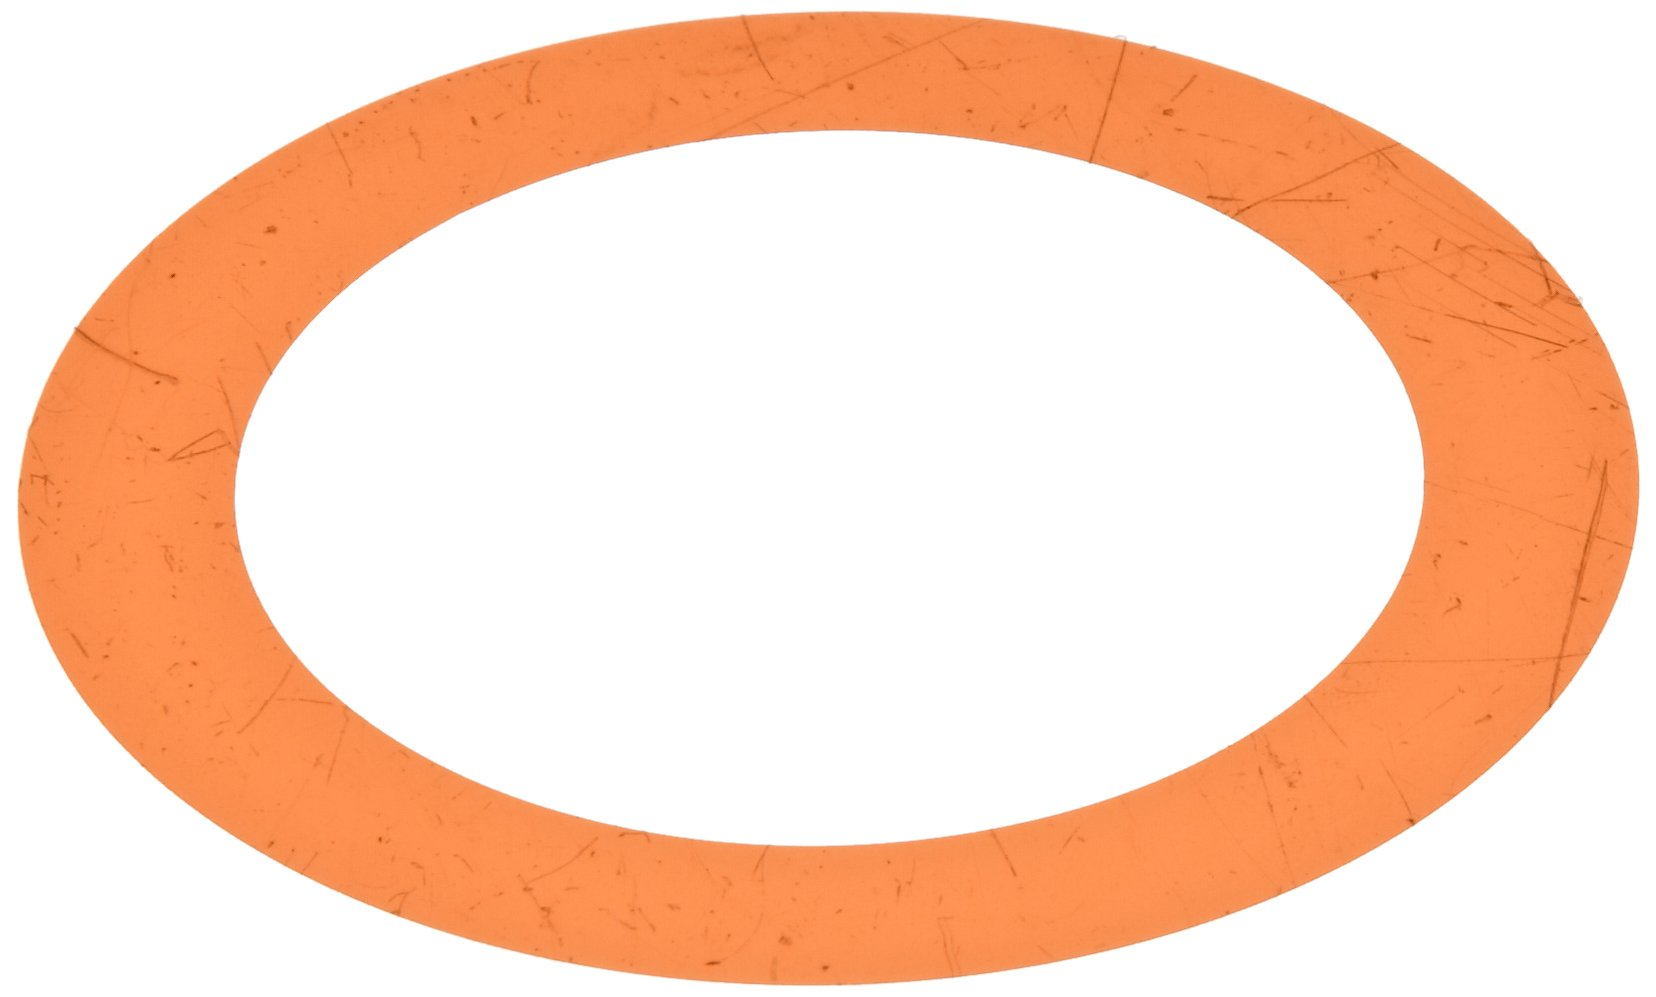 Polyester Round Shim, Amber, 0.001'' Thickness, 7/8'' ID, 1-3/8'' OD (Pack of 10) by Small Parts